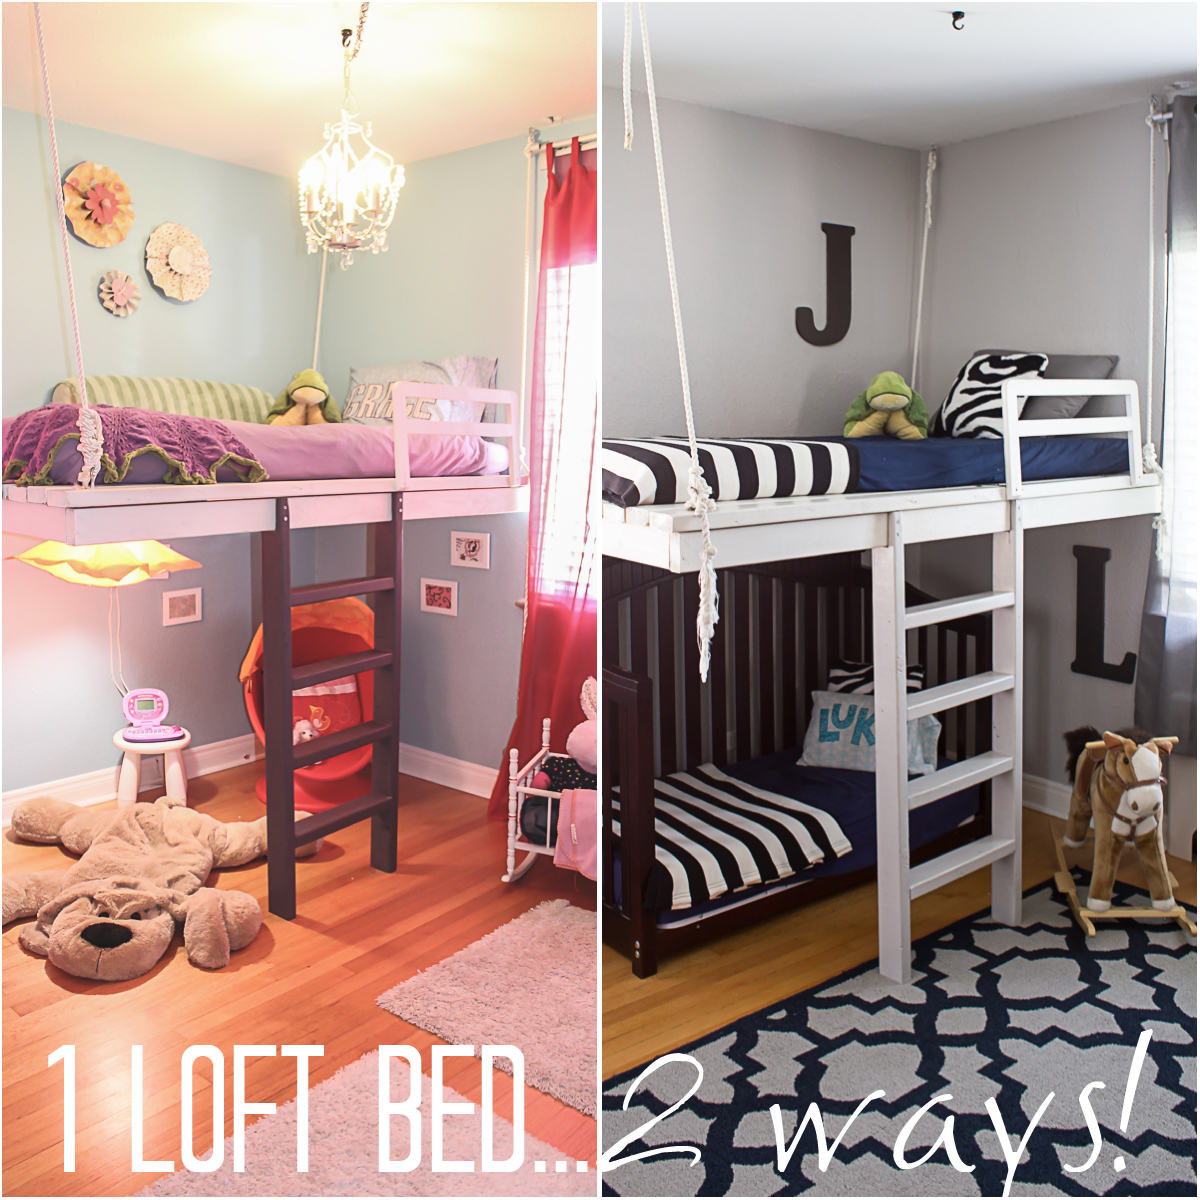 kids bottom for room bedroom gallery mydal ideas swap kid ikea bed crib bedrooms bunk with the s wall images cribs best a on pinterest